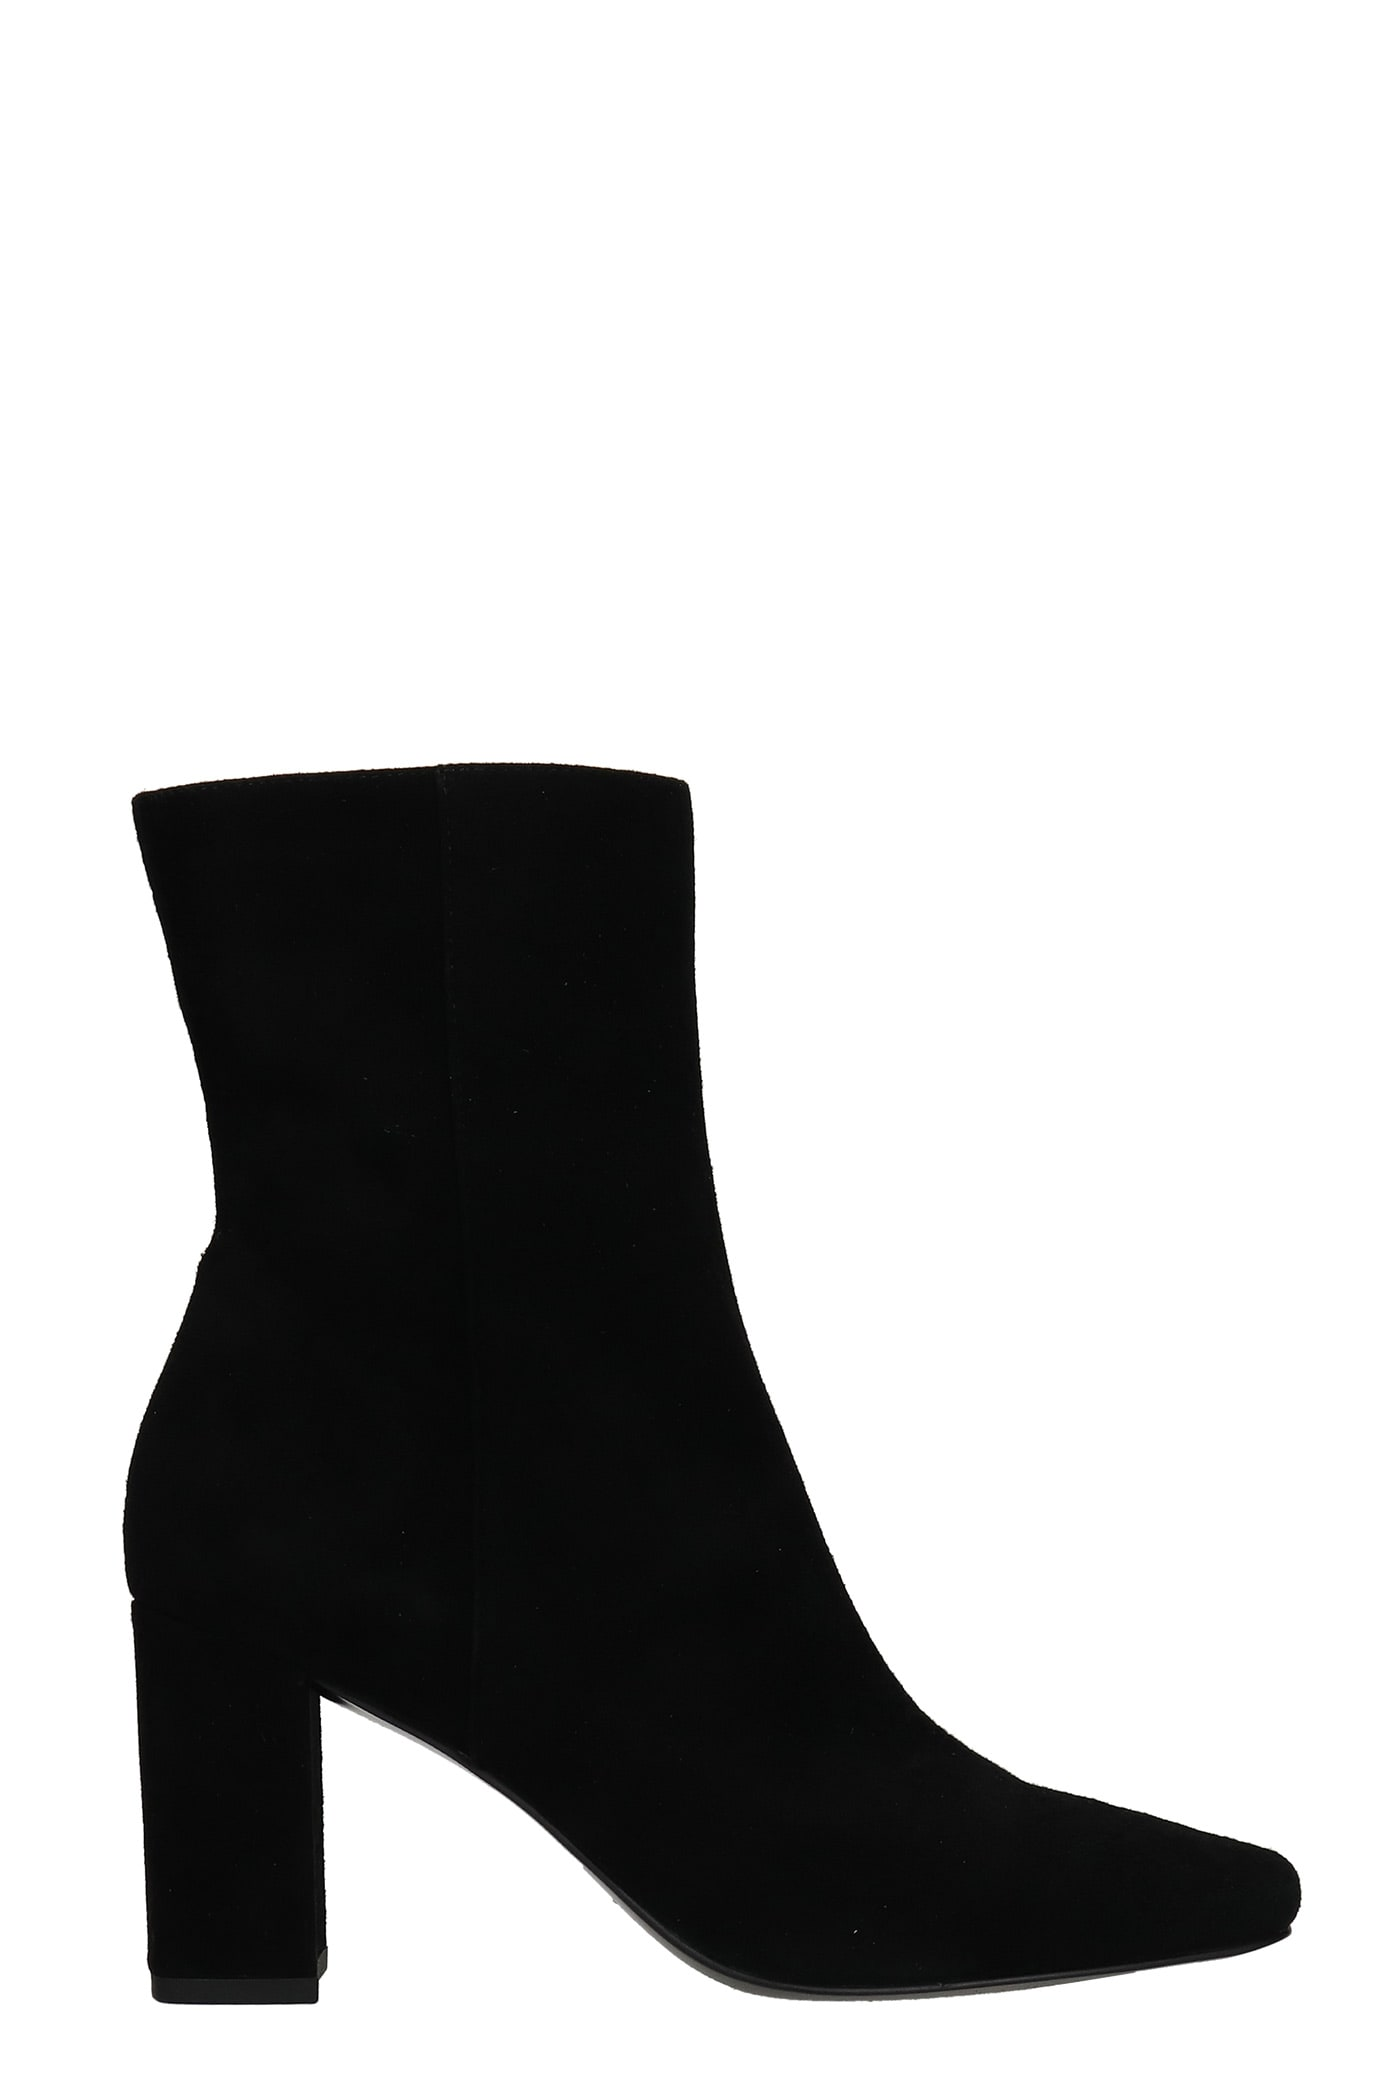 High Heels Ankle Boots In Black Suede